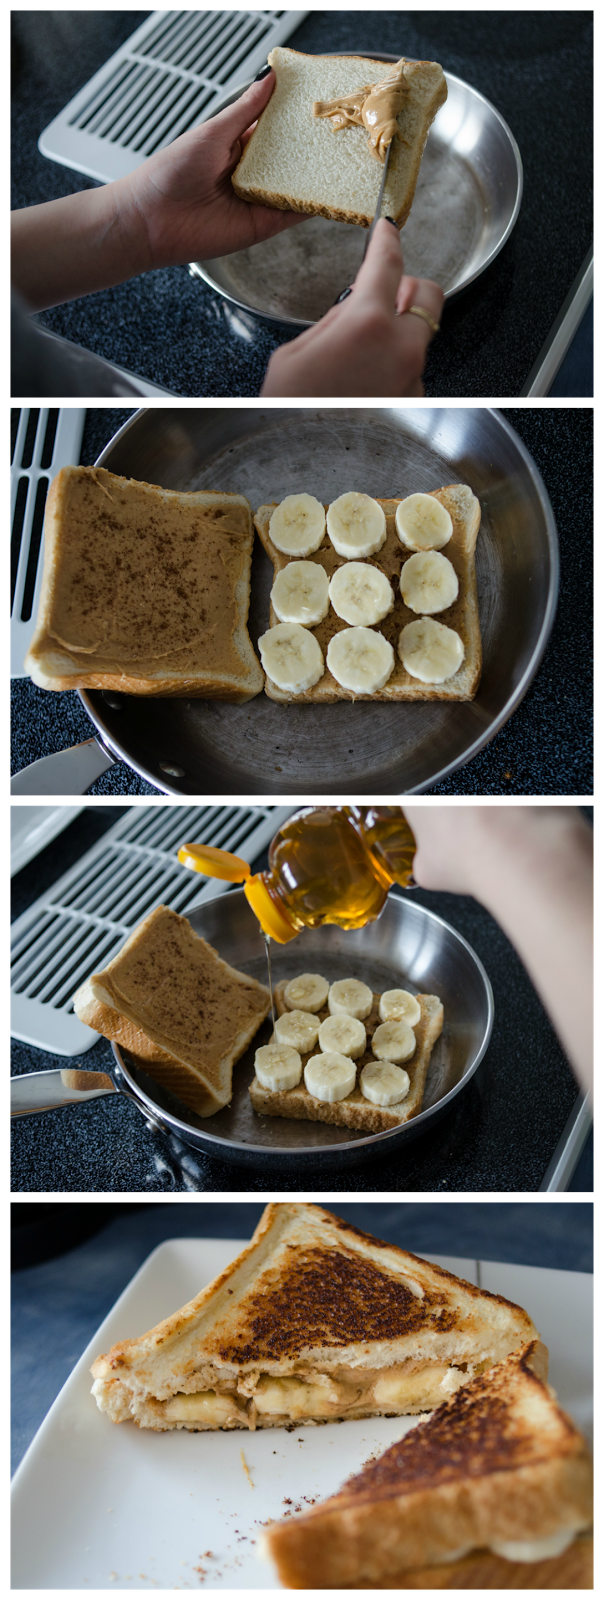 This grilled peanut butter and banana sandwich looks delicious!